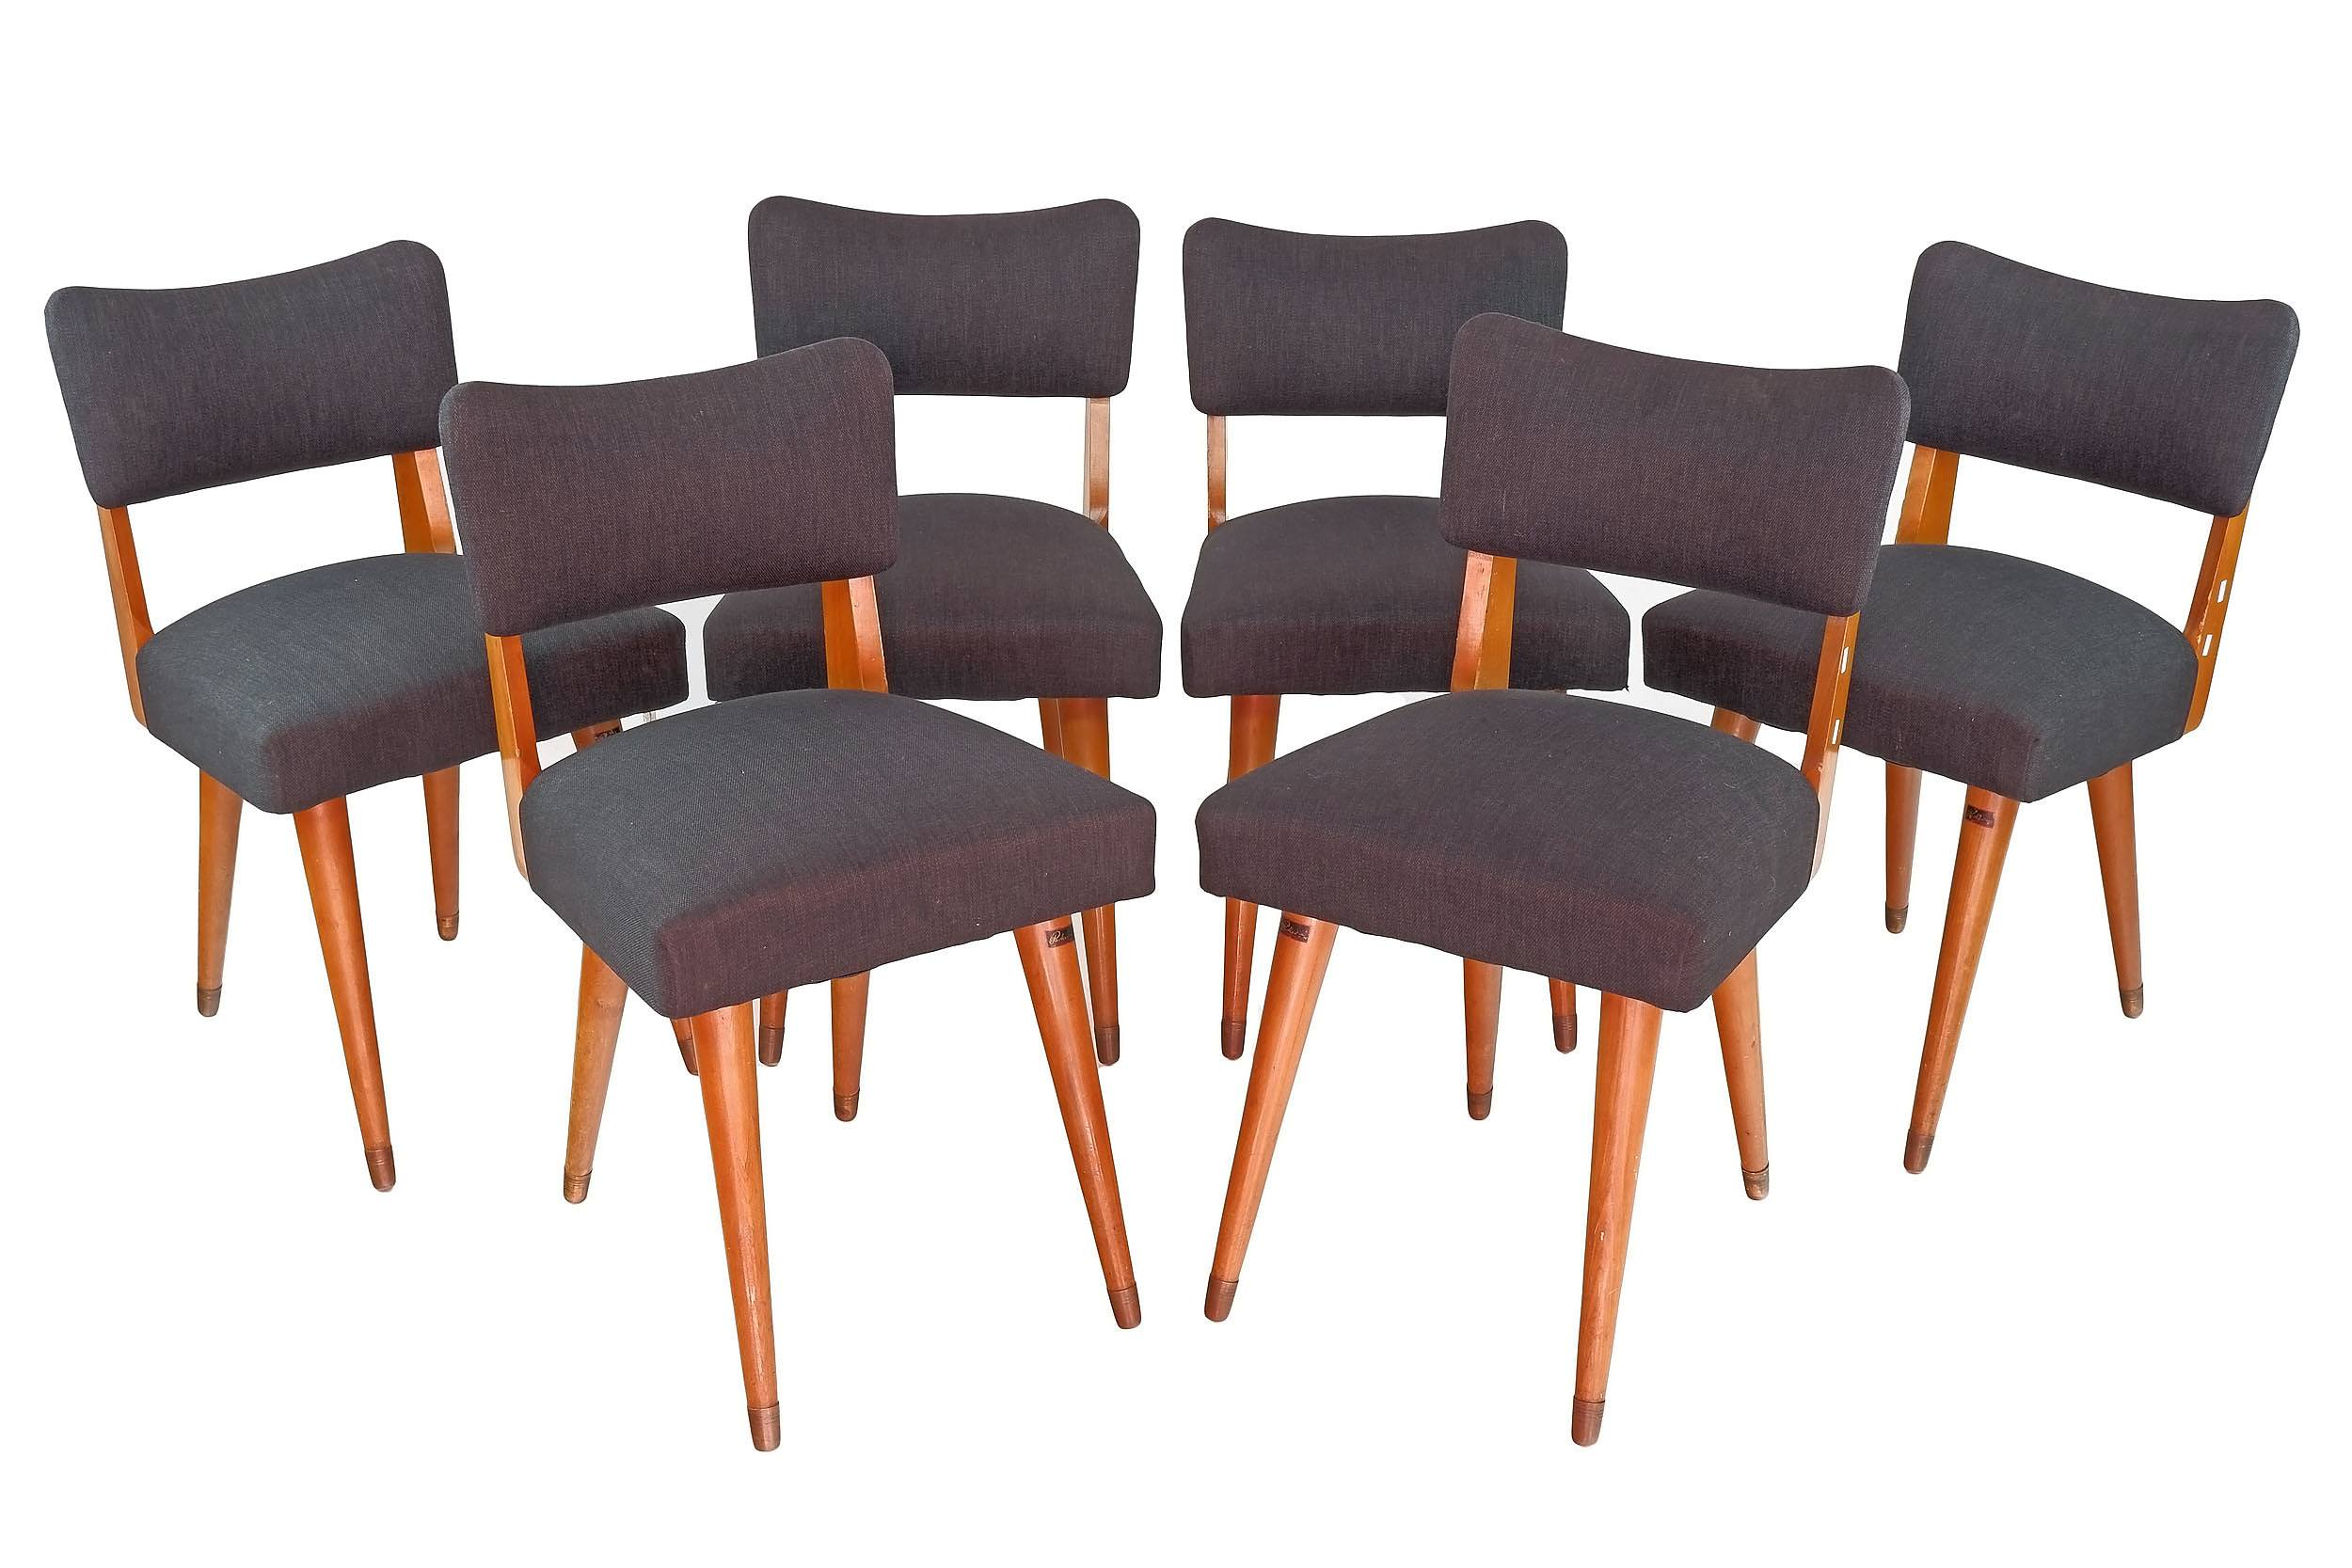 'Six Parker Newly Upholstered Dining Chairs, with Original Labels'